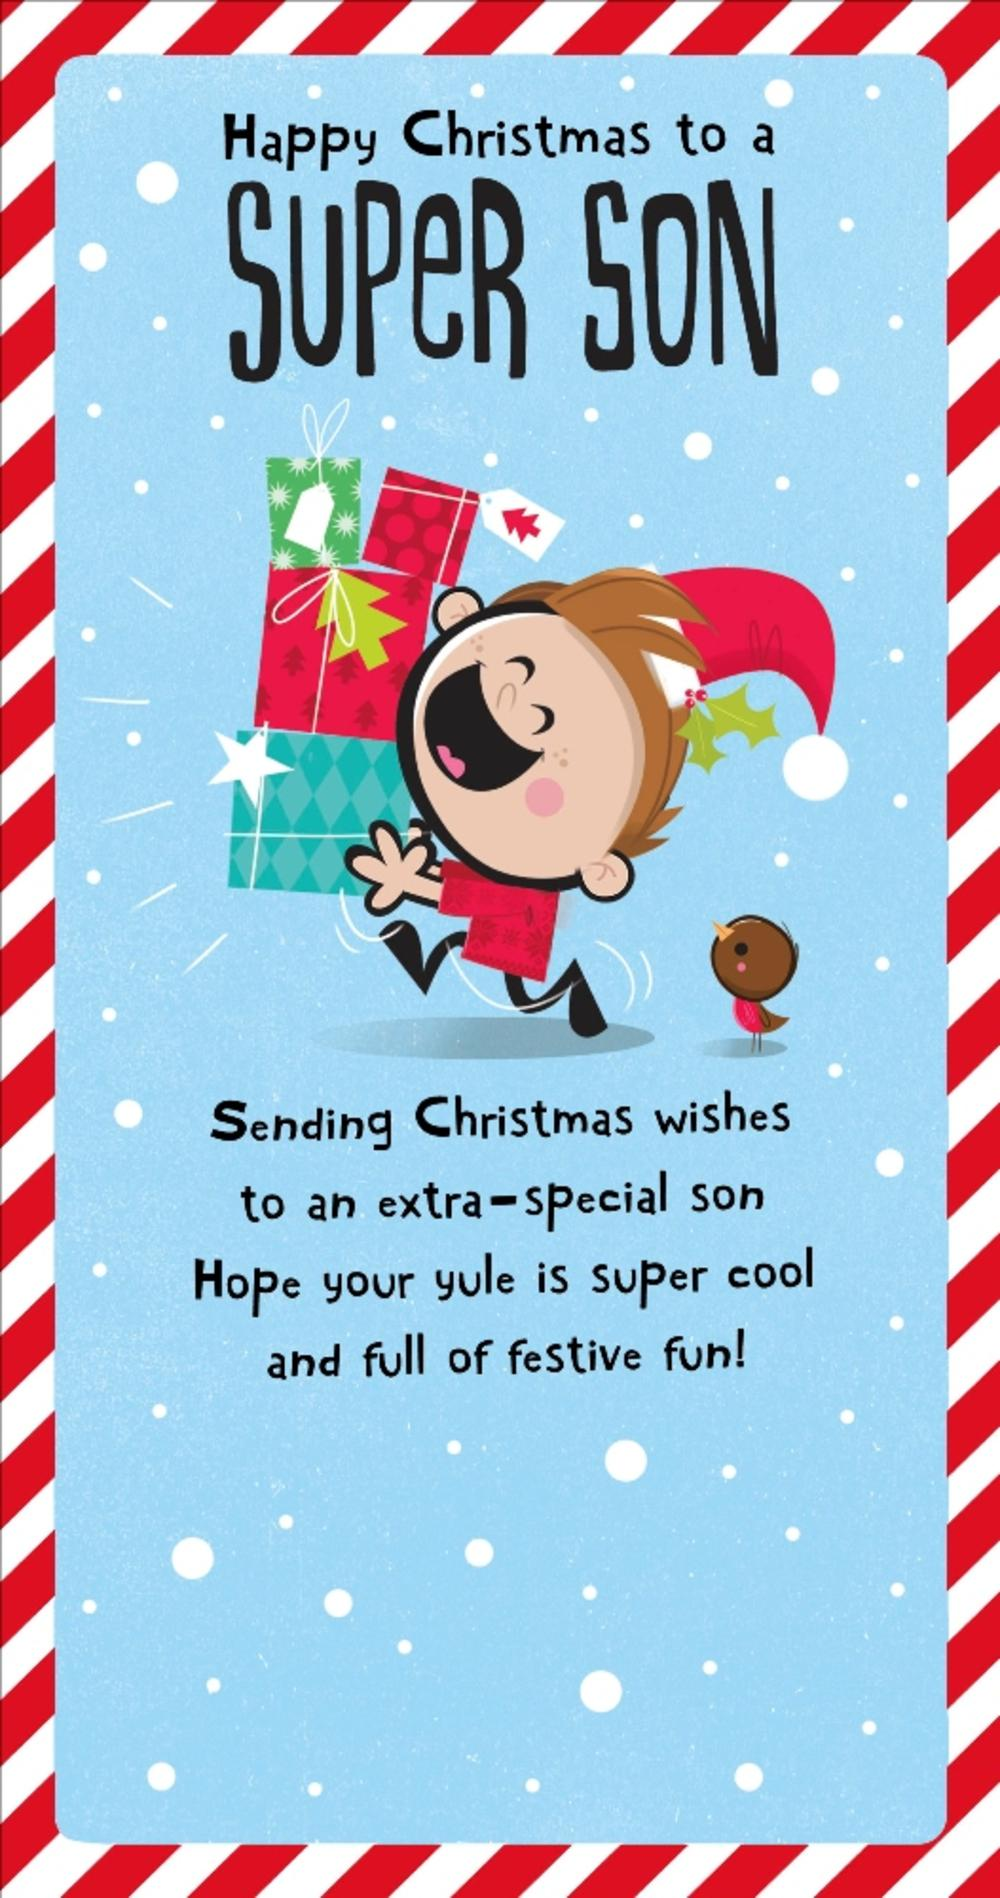 Super son christmas greeting card cards love kates super son christmas greeting card kristyandbryce Choice Image